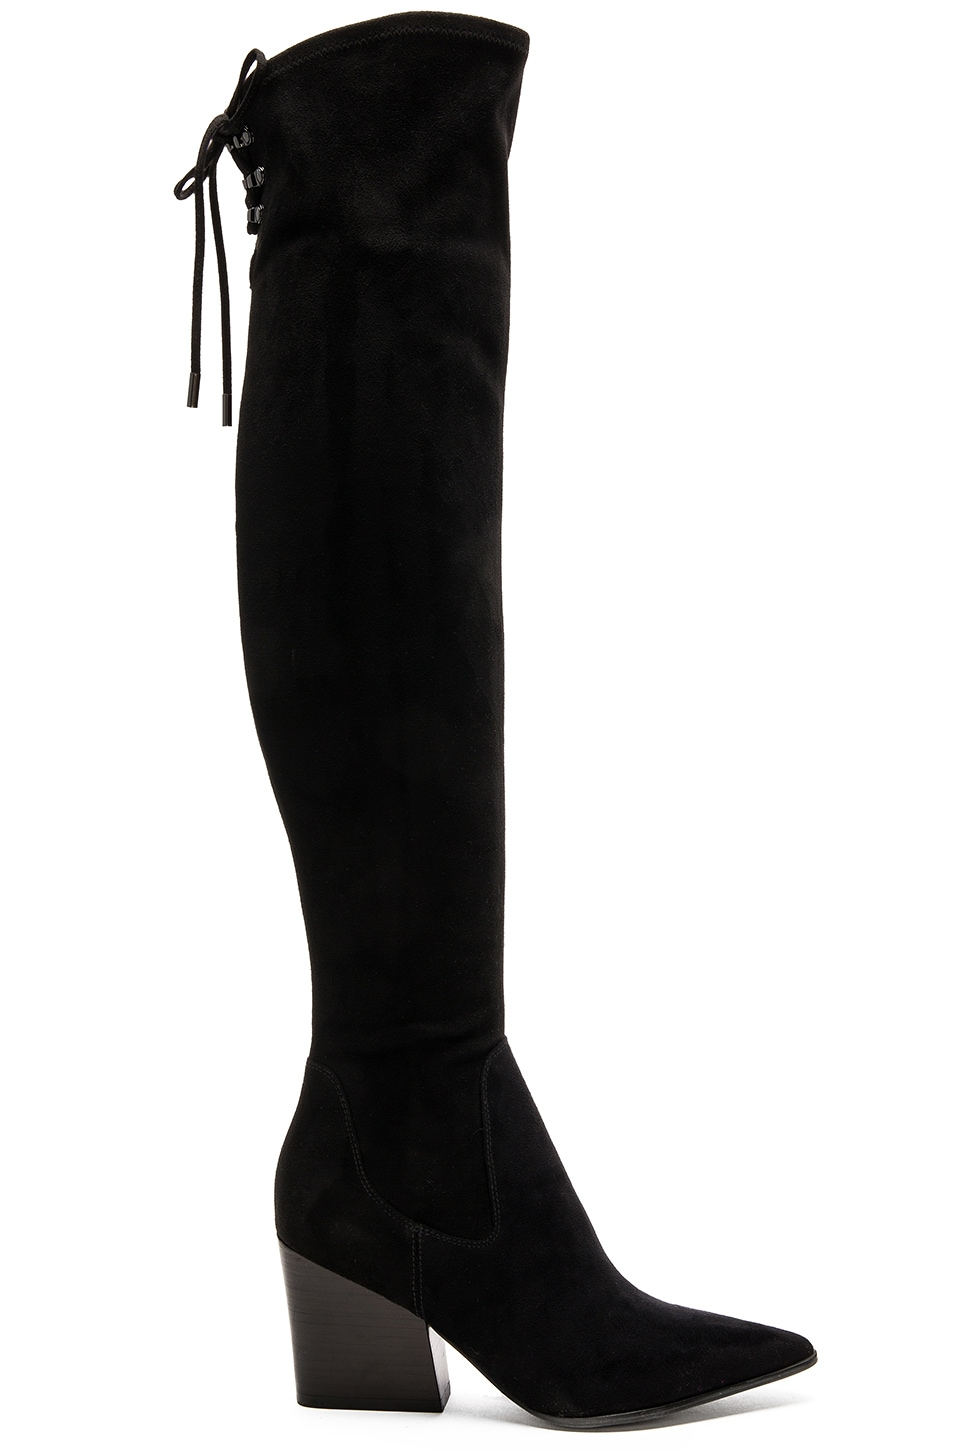 KENDALL + KYLIE Fedra Boot in Black Suede